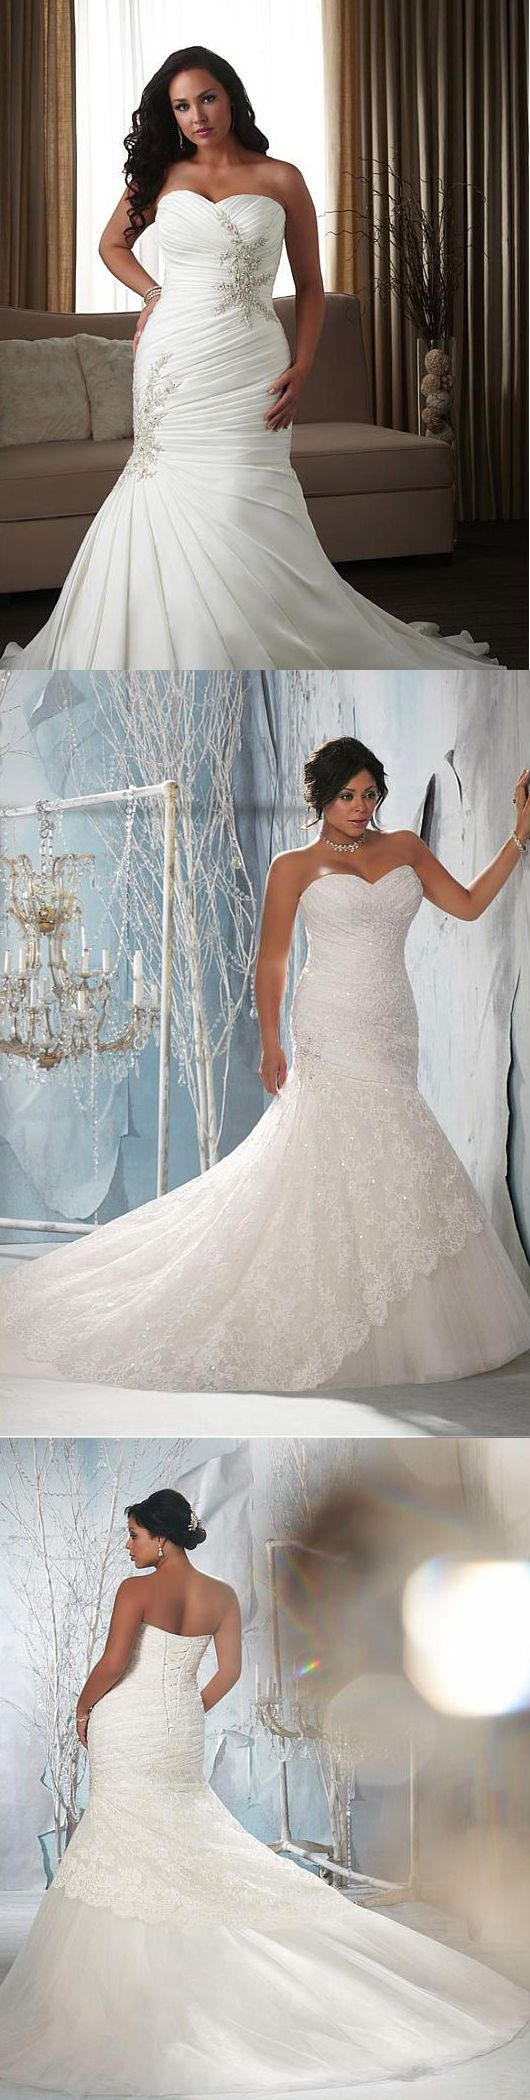 Awesome & Unique Plus Size Ivory Wedding Dresses for curvy / curves women that are simple, Beautiful, Elegant & Romantic which comes in different style like A Line, Mermaid, Ball Gown, Modest, Boho / Bohemian, Vintage / Modern, Lace / Lacy Look, with & without sleeves, backless / open back, with straps / strapless etc. These Flowy Bridal Dess are perfect for Beach / Rustic / Country / Winter / Courthouse / Cathedral Weddings / Rehearsal Dinners & fits with any body types - fat / petite